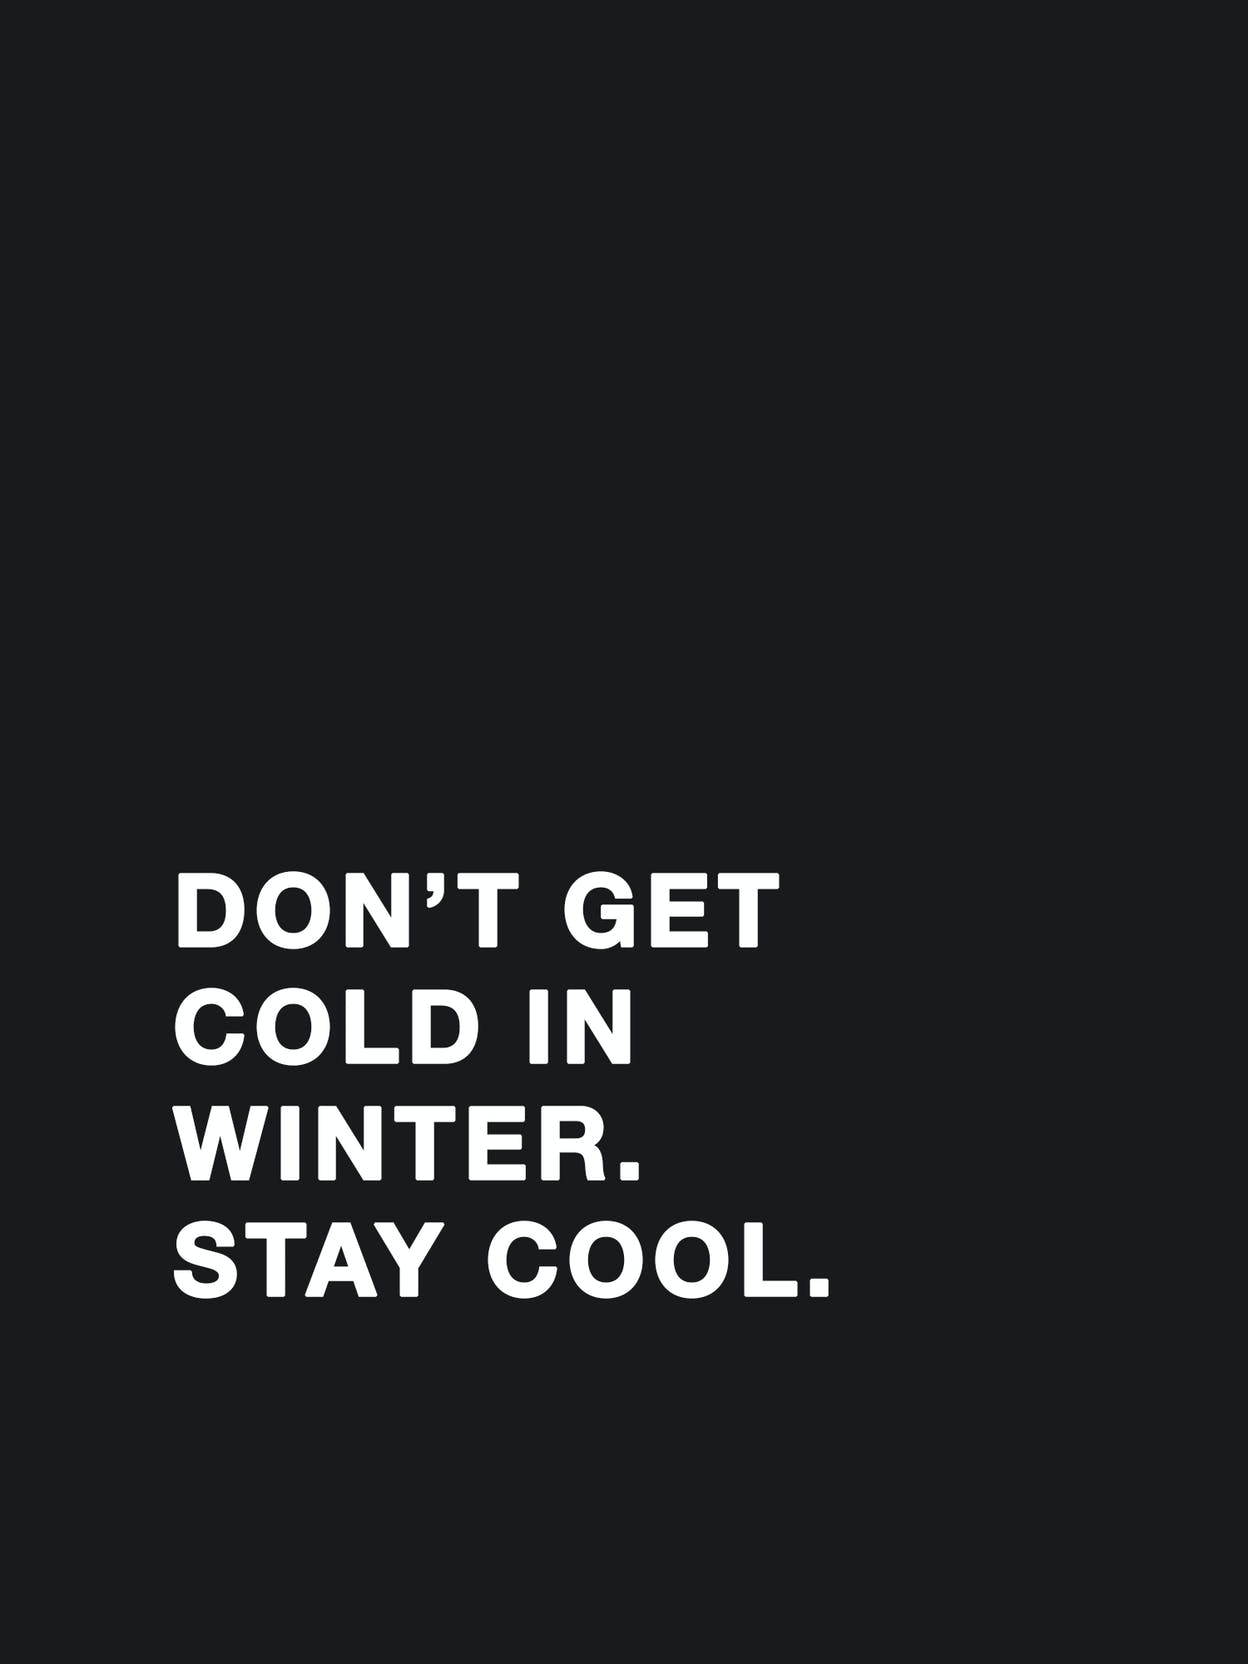 text-winter-stay-cool